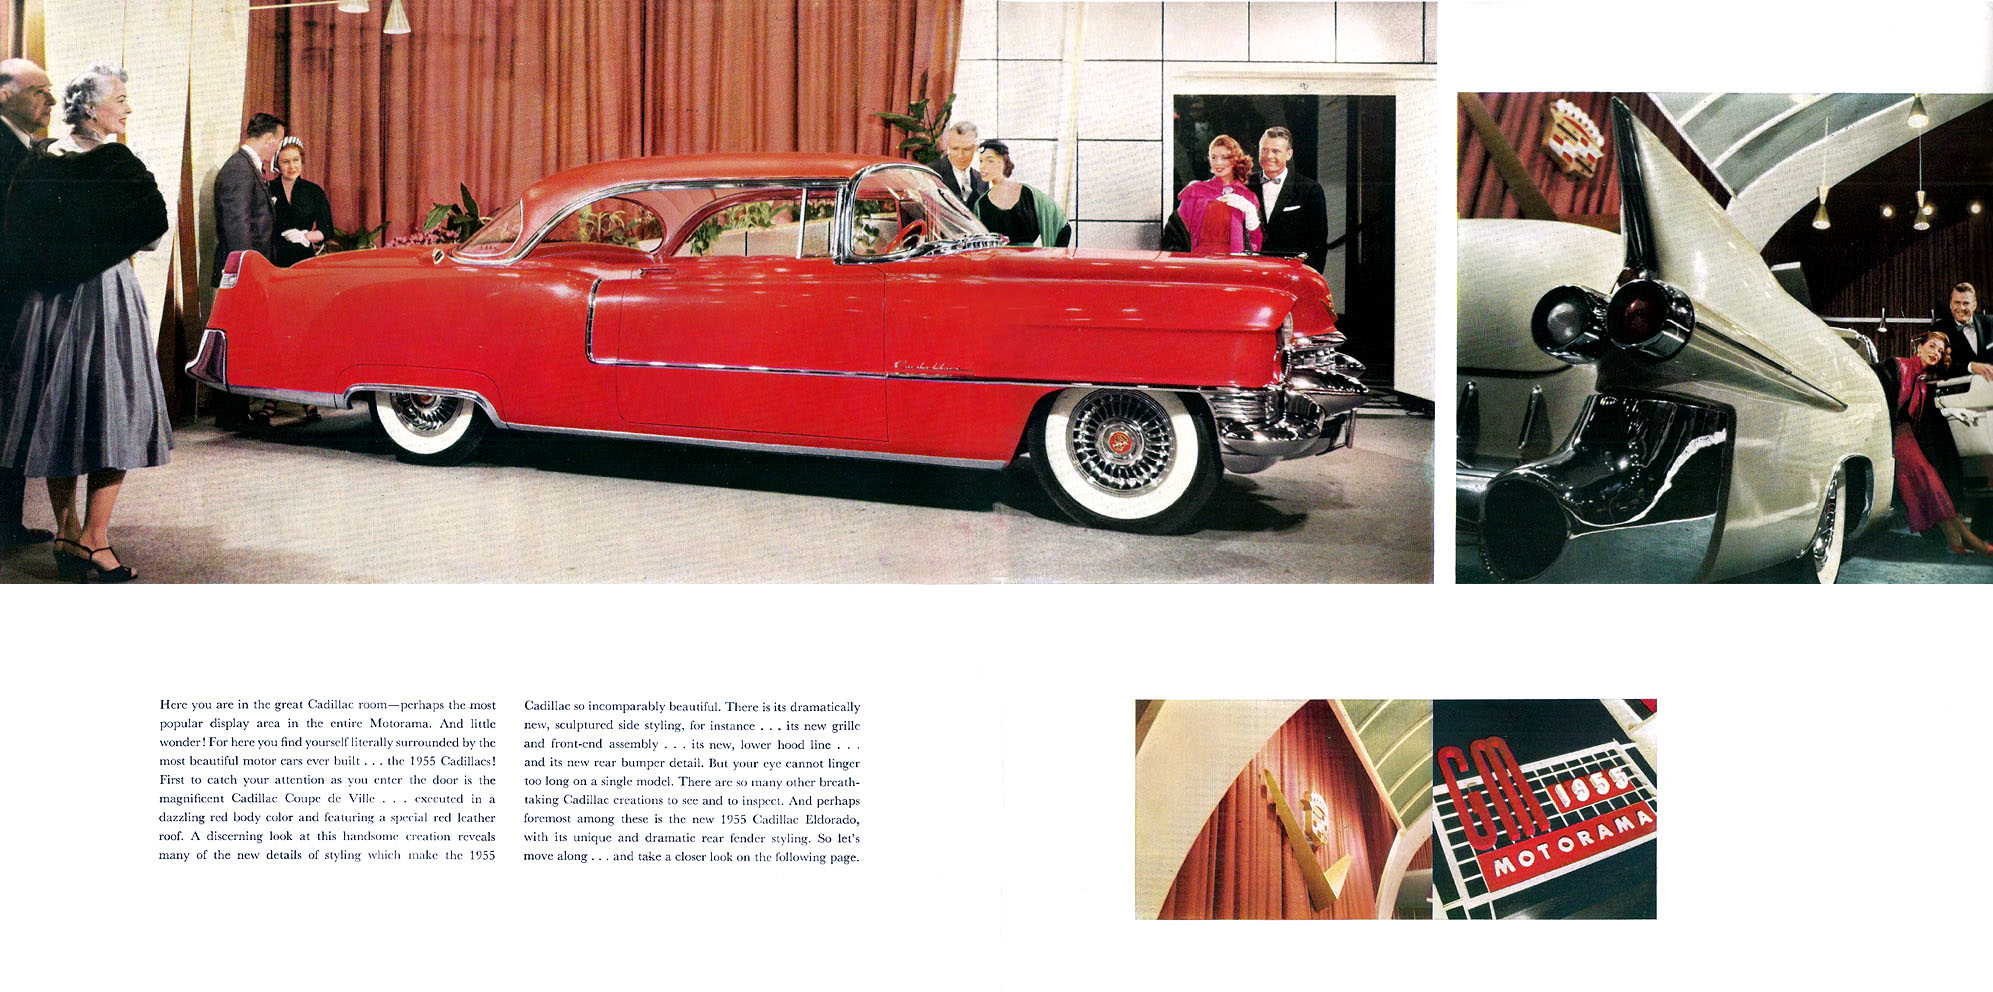 40 Years In A Barn 1955 Cadillac Coupe De Ville. Even If You Don't See Yourself Shaking Down The Good Citizens Of Your Neighborhood For Protection Money This Fat Cadillac Es With. Cadillac. 55 Cadillac Wiring Seat At Scoala.co